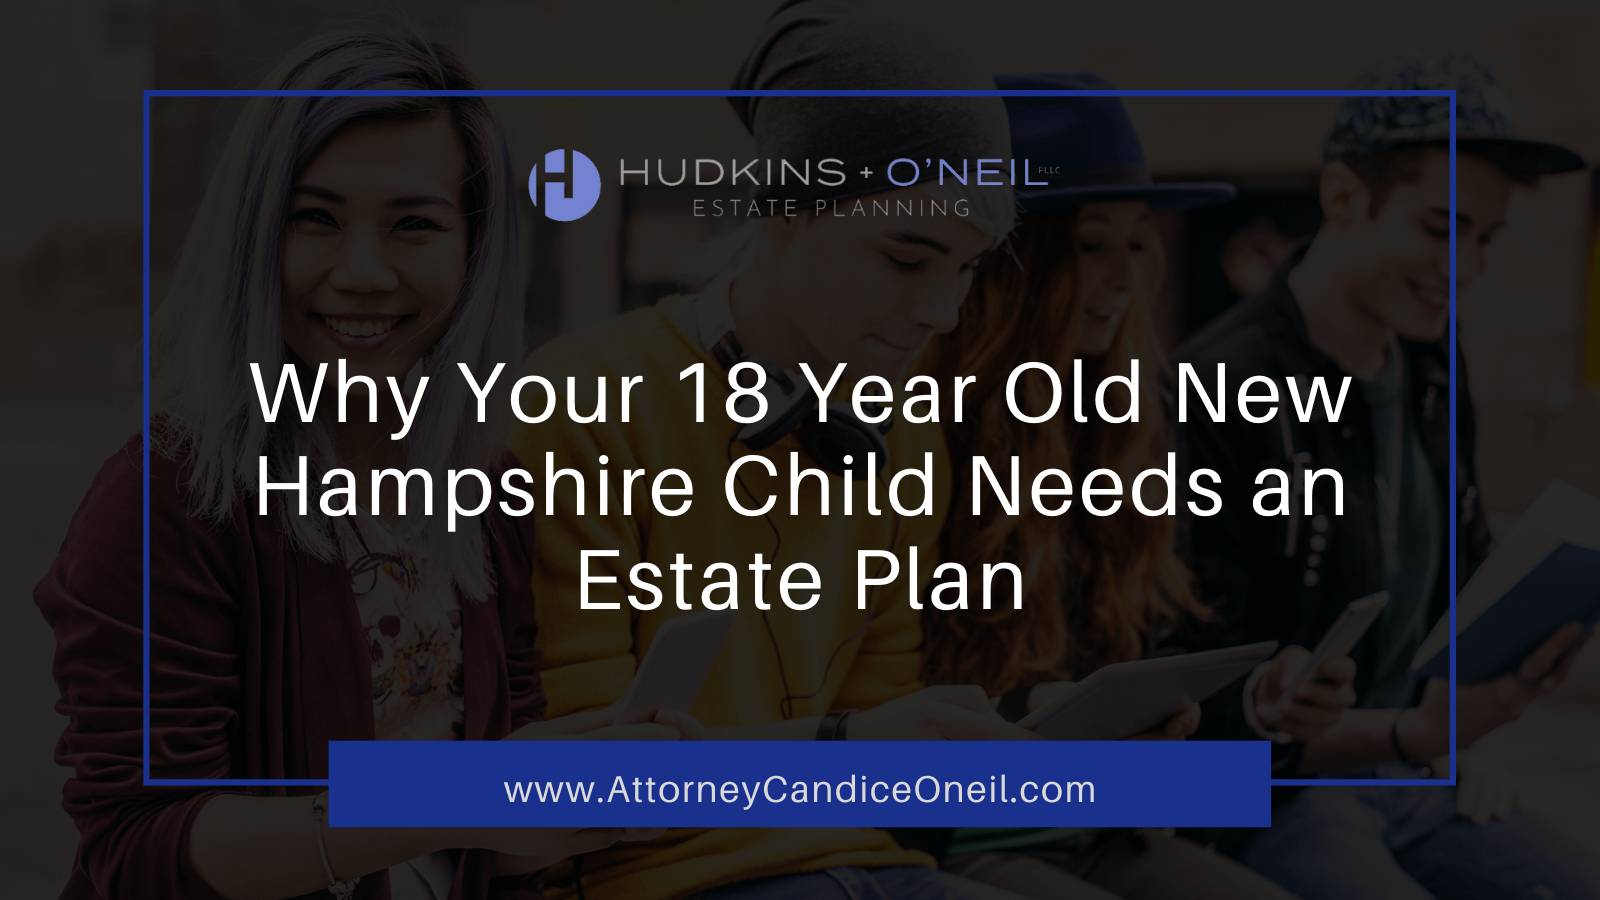 Why Your 18 Year Old New Hampshire Child Needs an Estate Plan